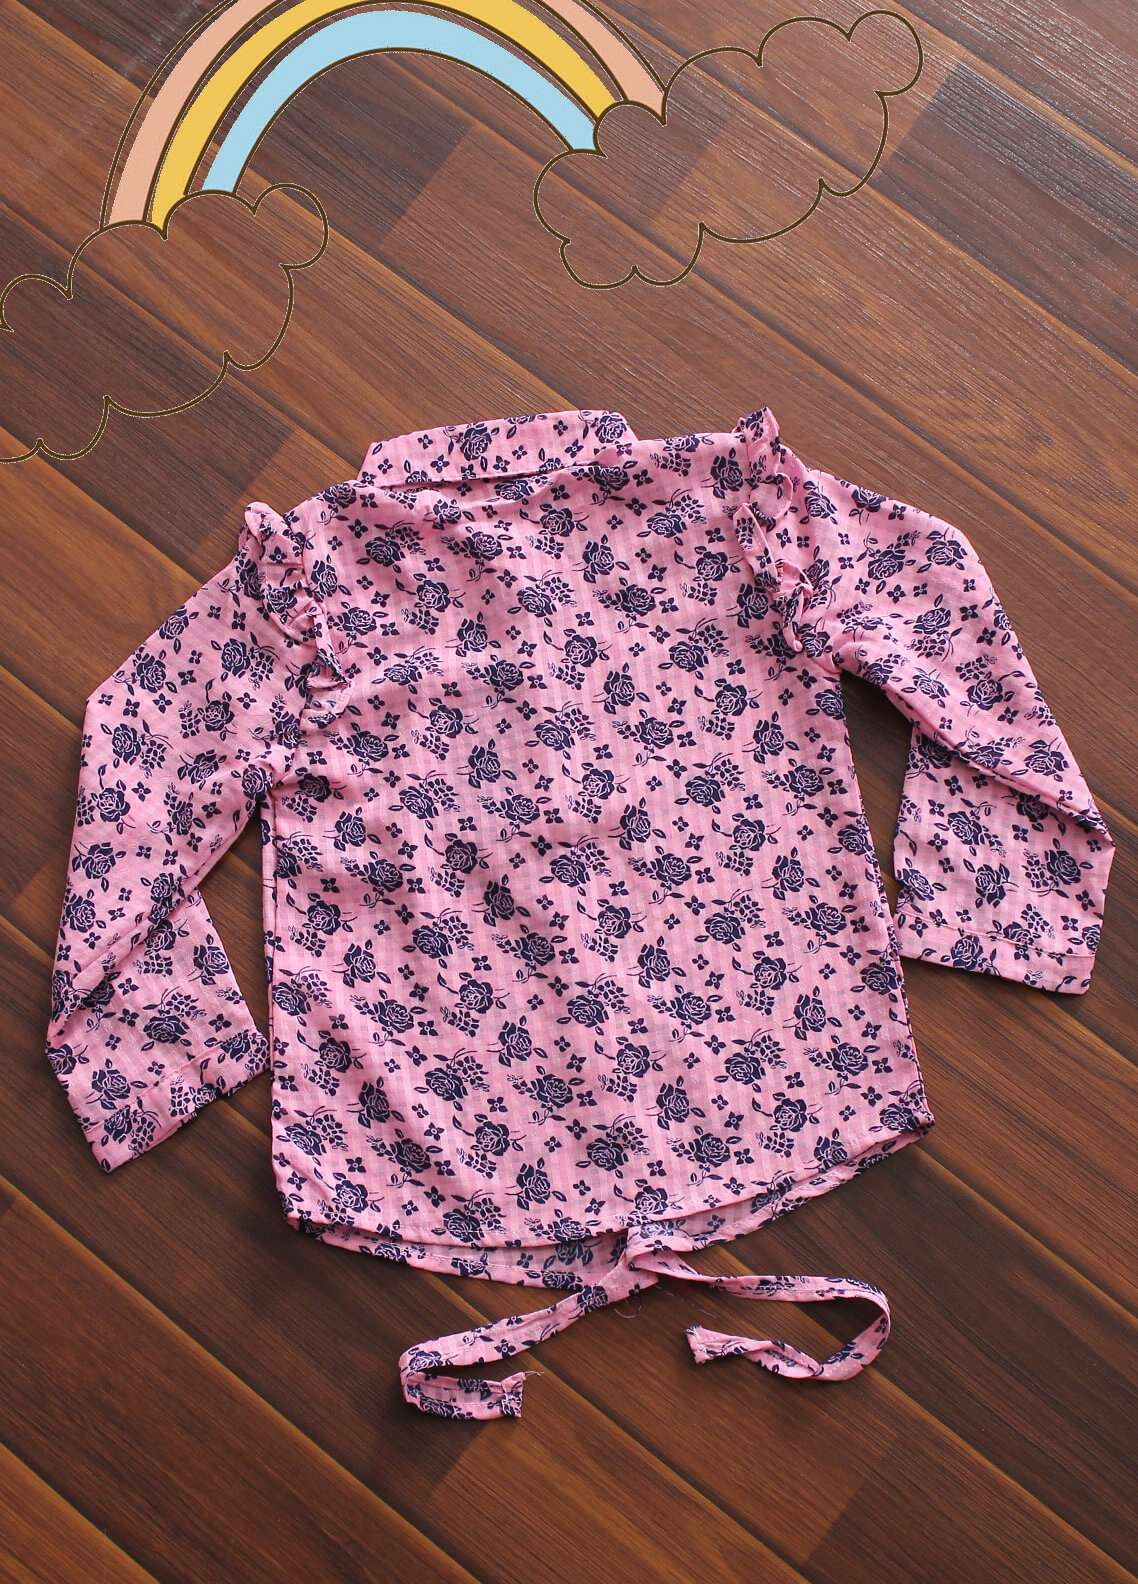 Sanaulla Exclusive Range Cotton Fancy Shirts for Girls -  CQ-15 Pink